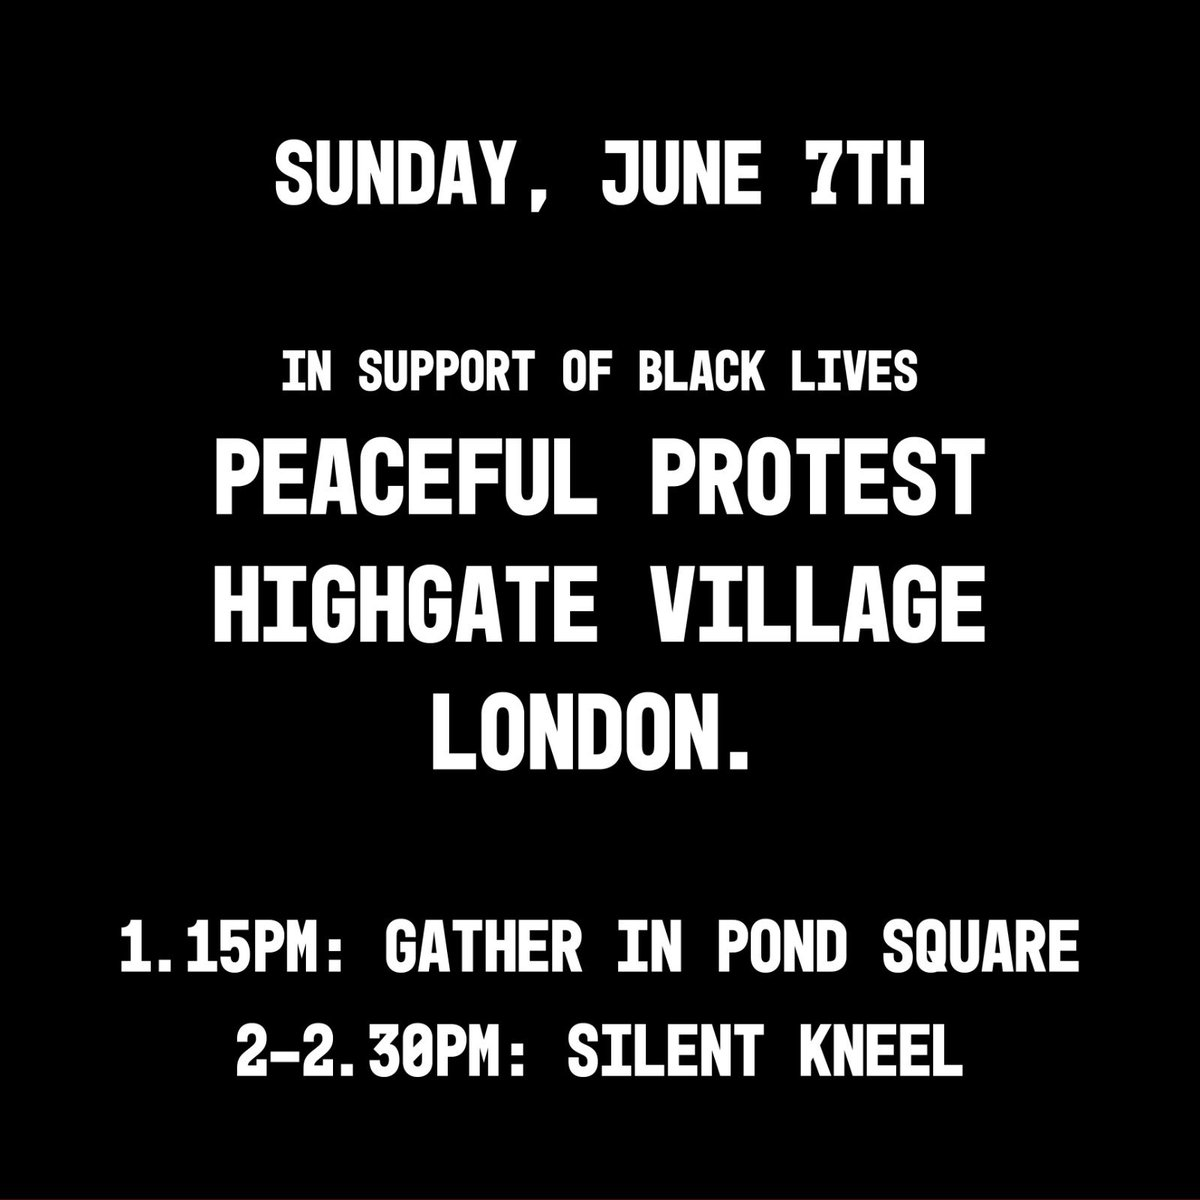 I want to support#blacklivesmatter, share anti-racism resourcesand support the NHS by staying local and avoiding crowds, especially as they brace themselves for a second wave and as BAME people are some of the worst effected by the virus. Join me this Sunday. Wear a mask.